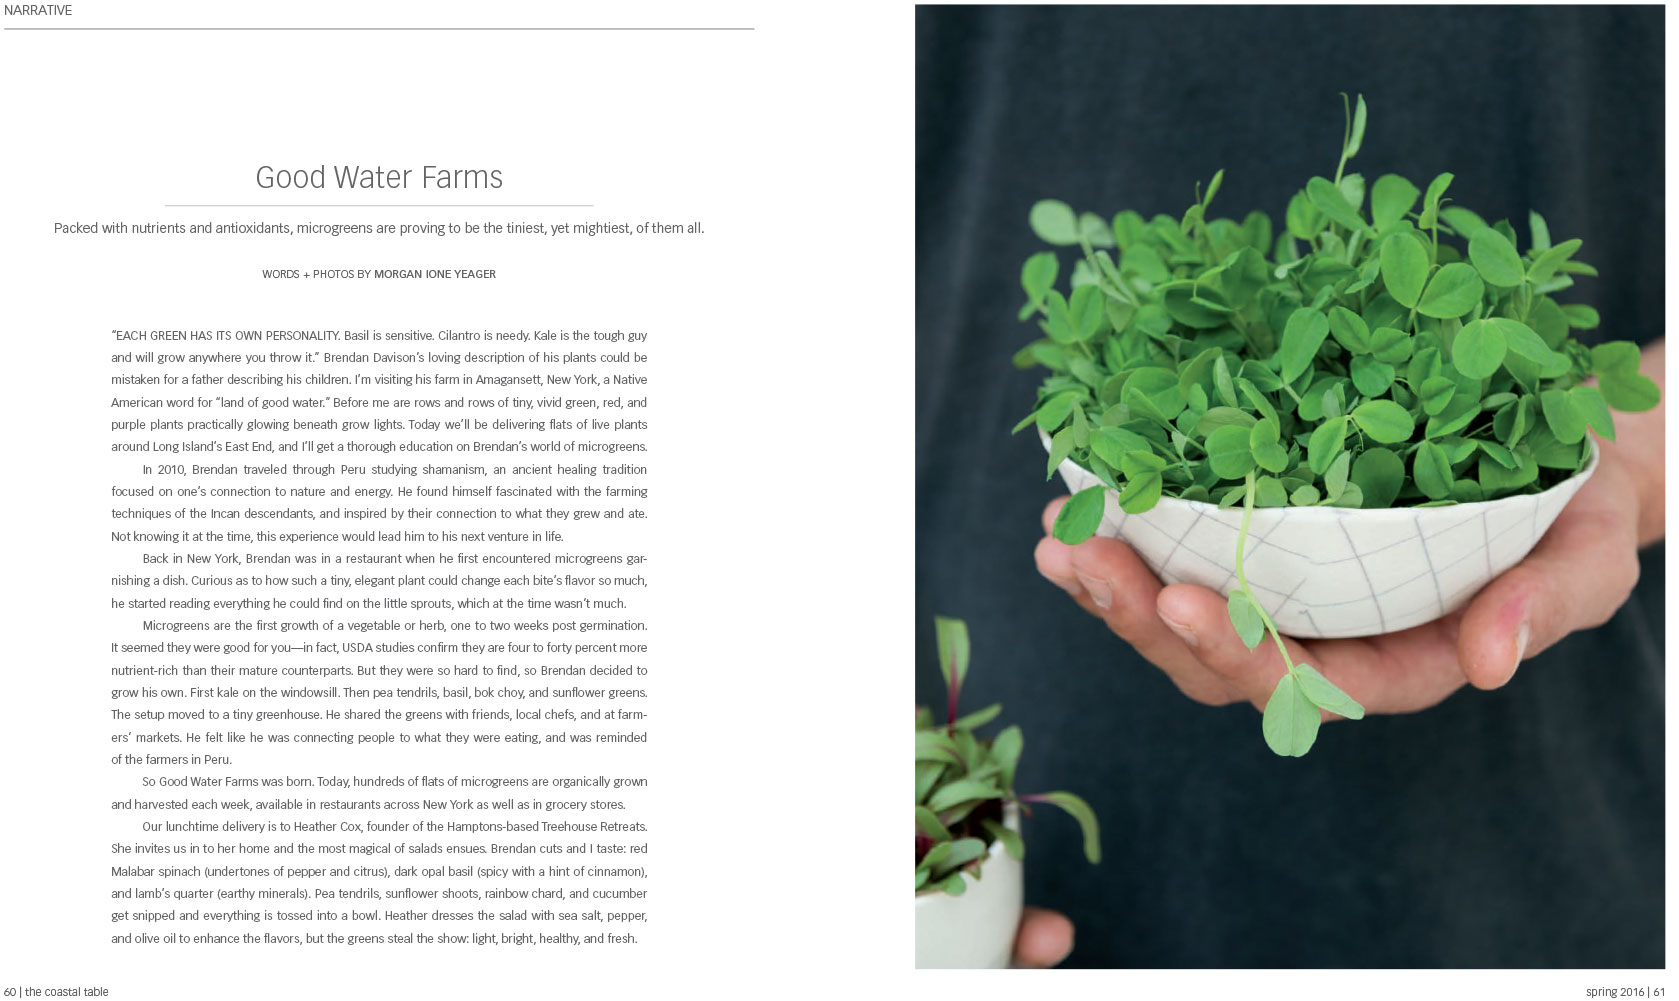 Goodwater Farms Micro Greens, The Coastal Table, Morgan Ione Yeager